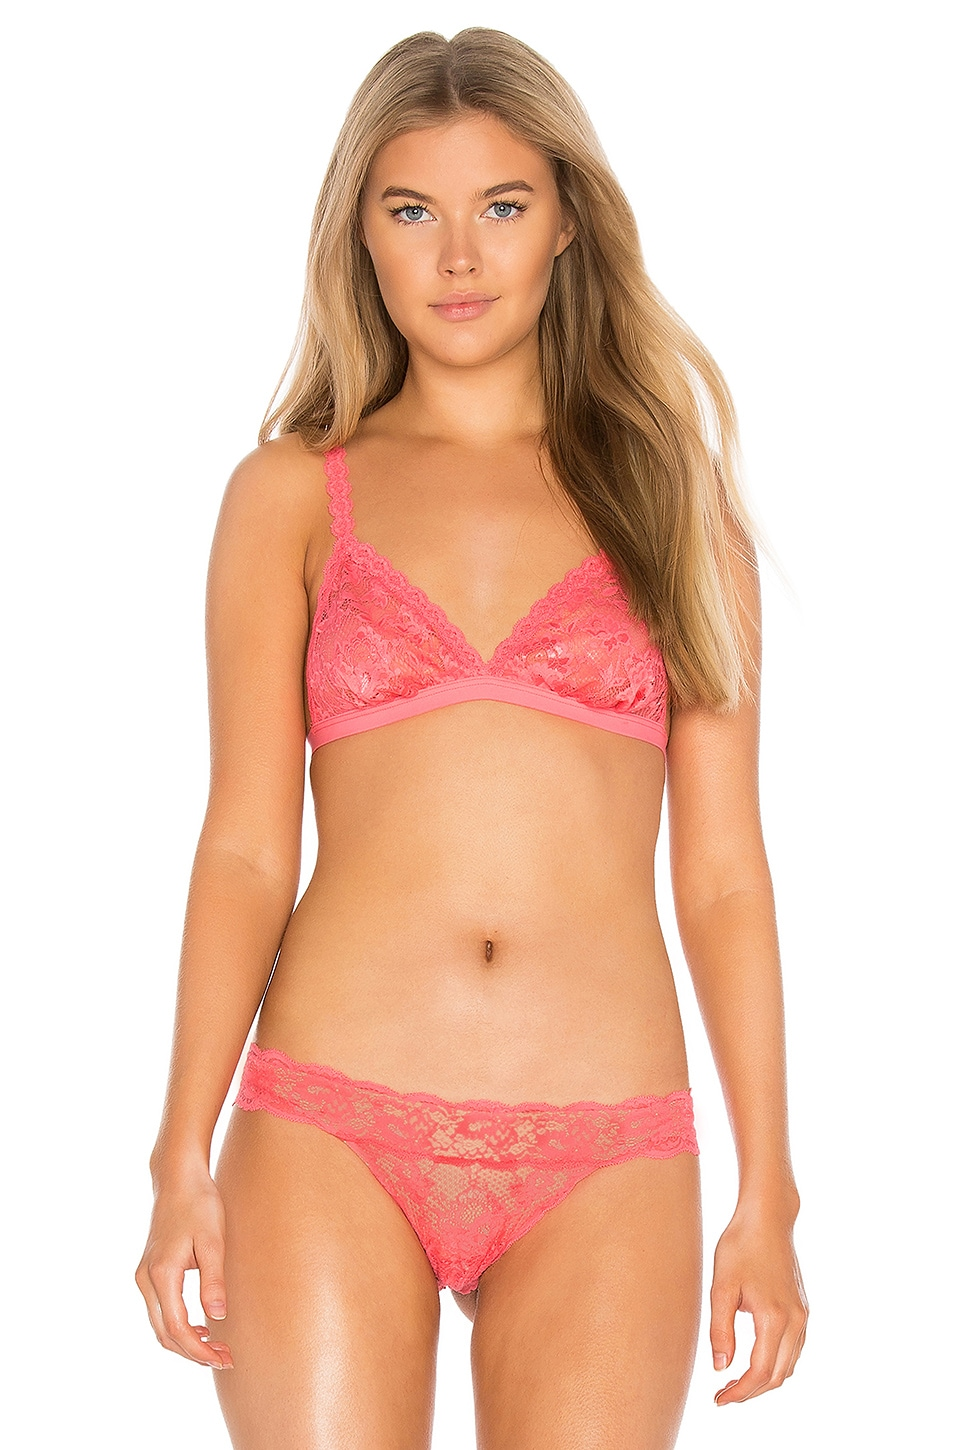 Never Say Never Dreamie Soft Bra by Cosabella